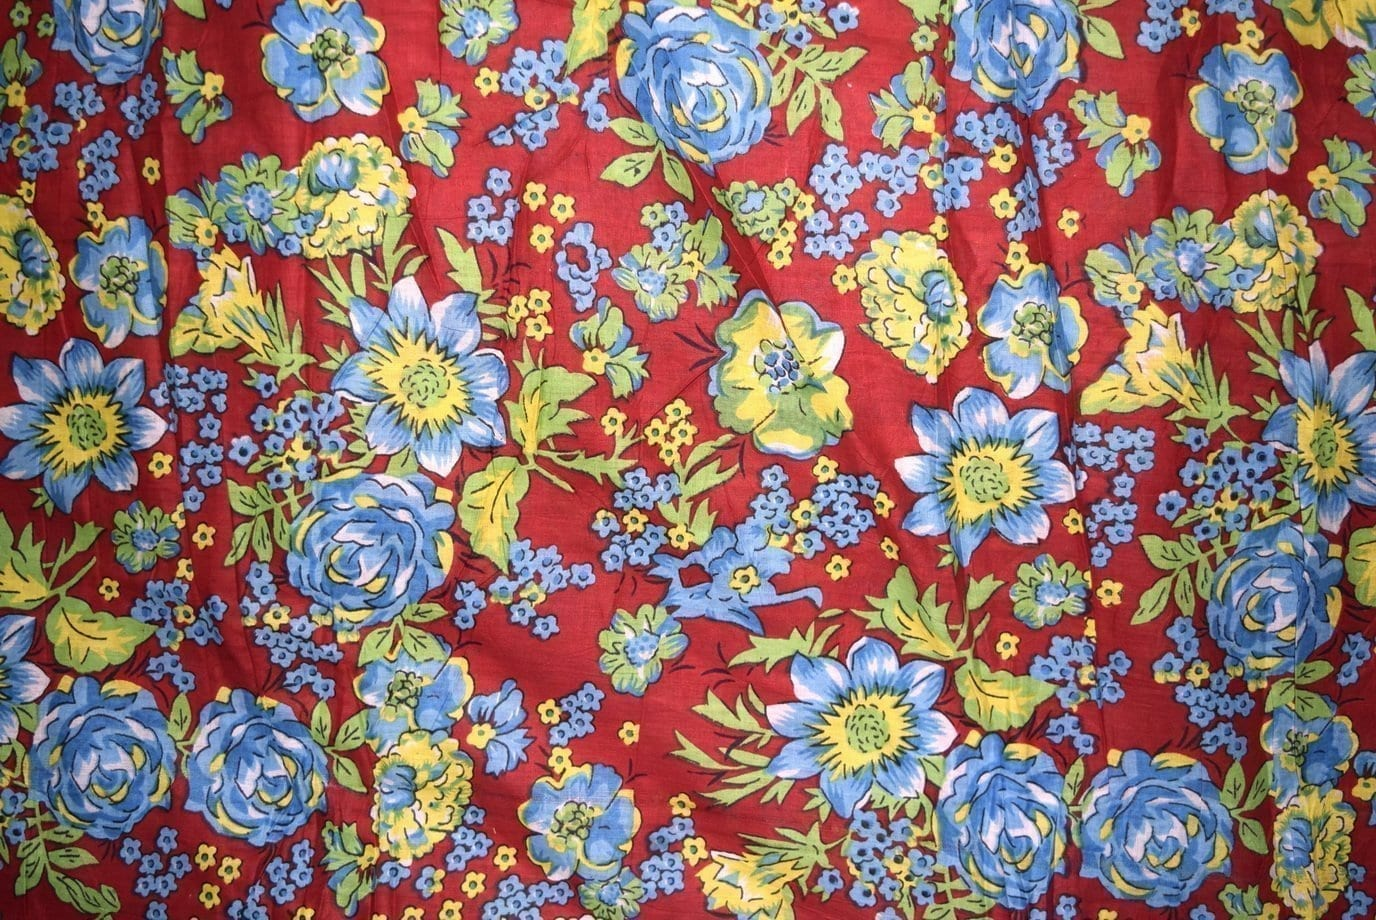 100% PURE Soft COTTON PRINTED fabric PC160 2